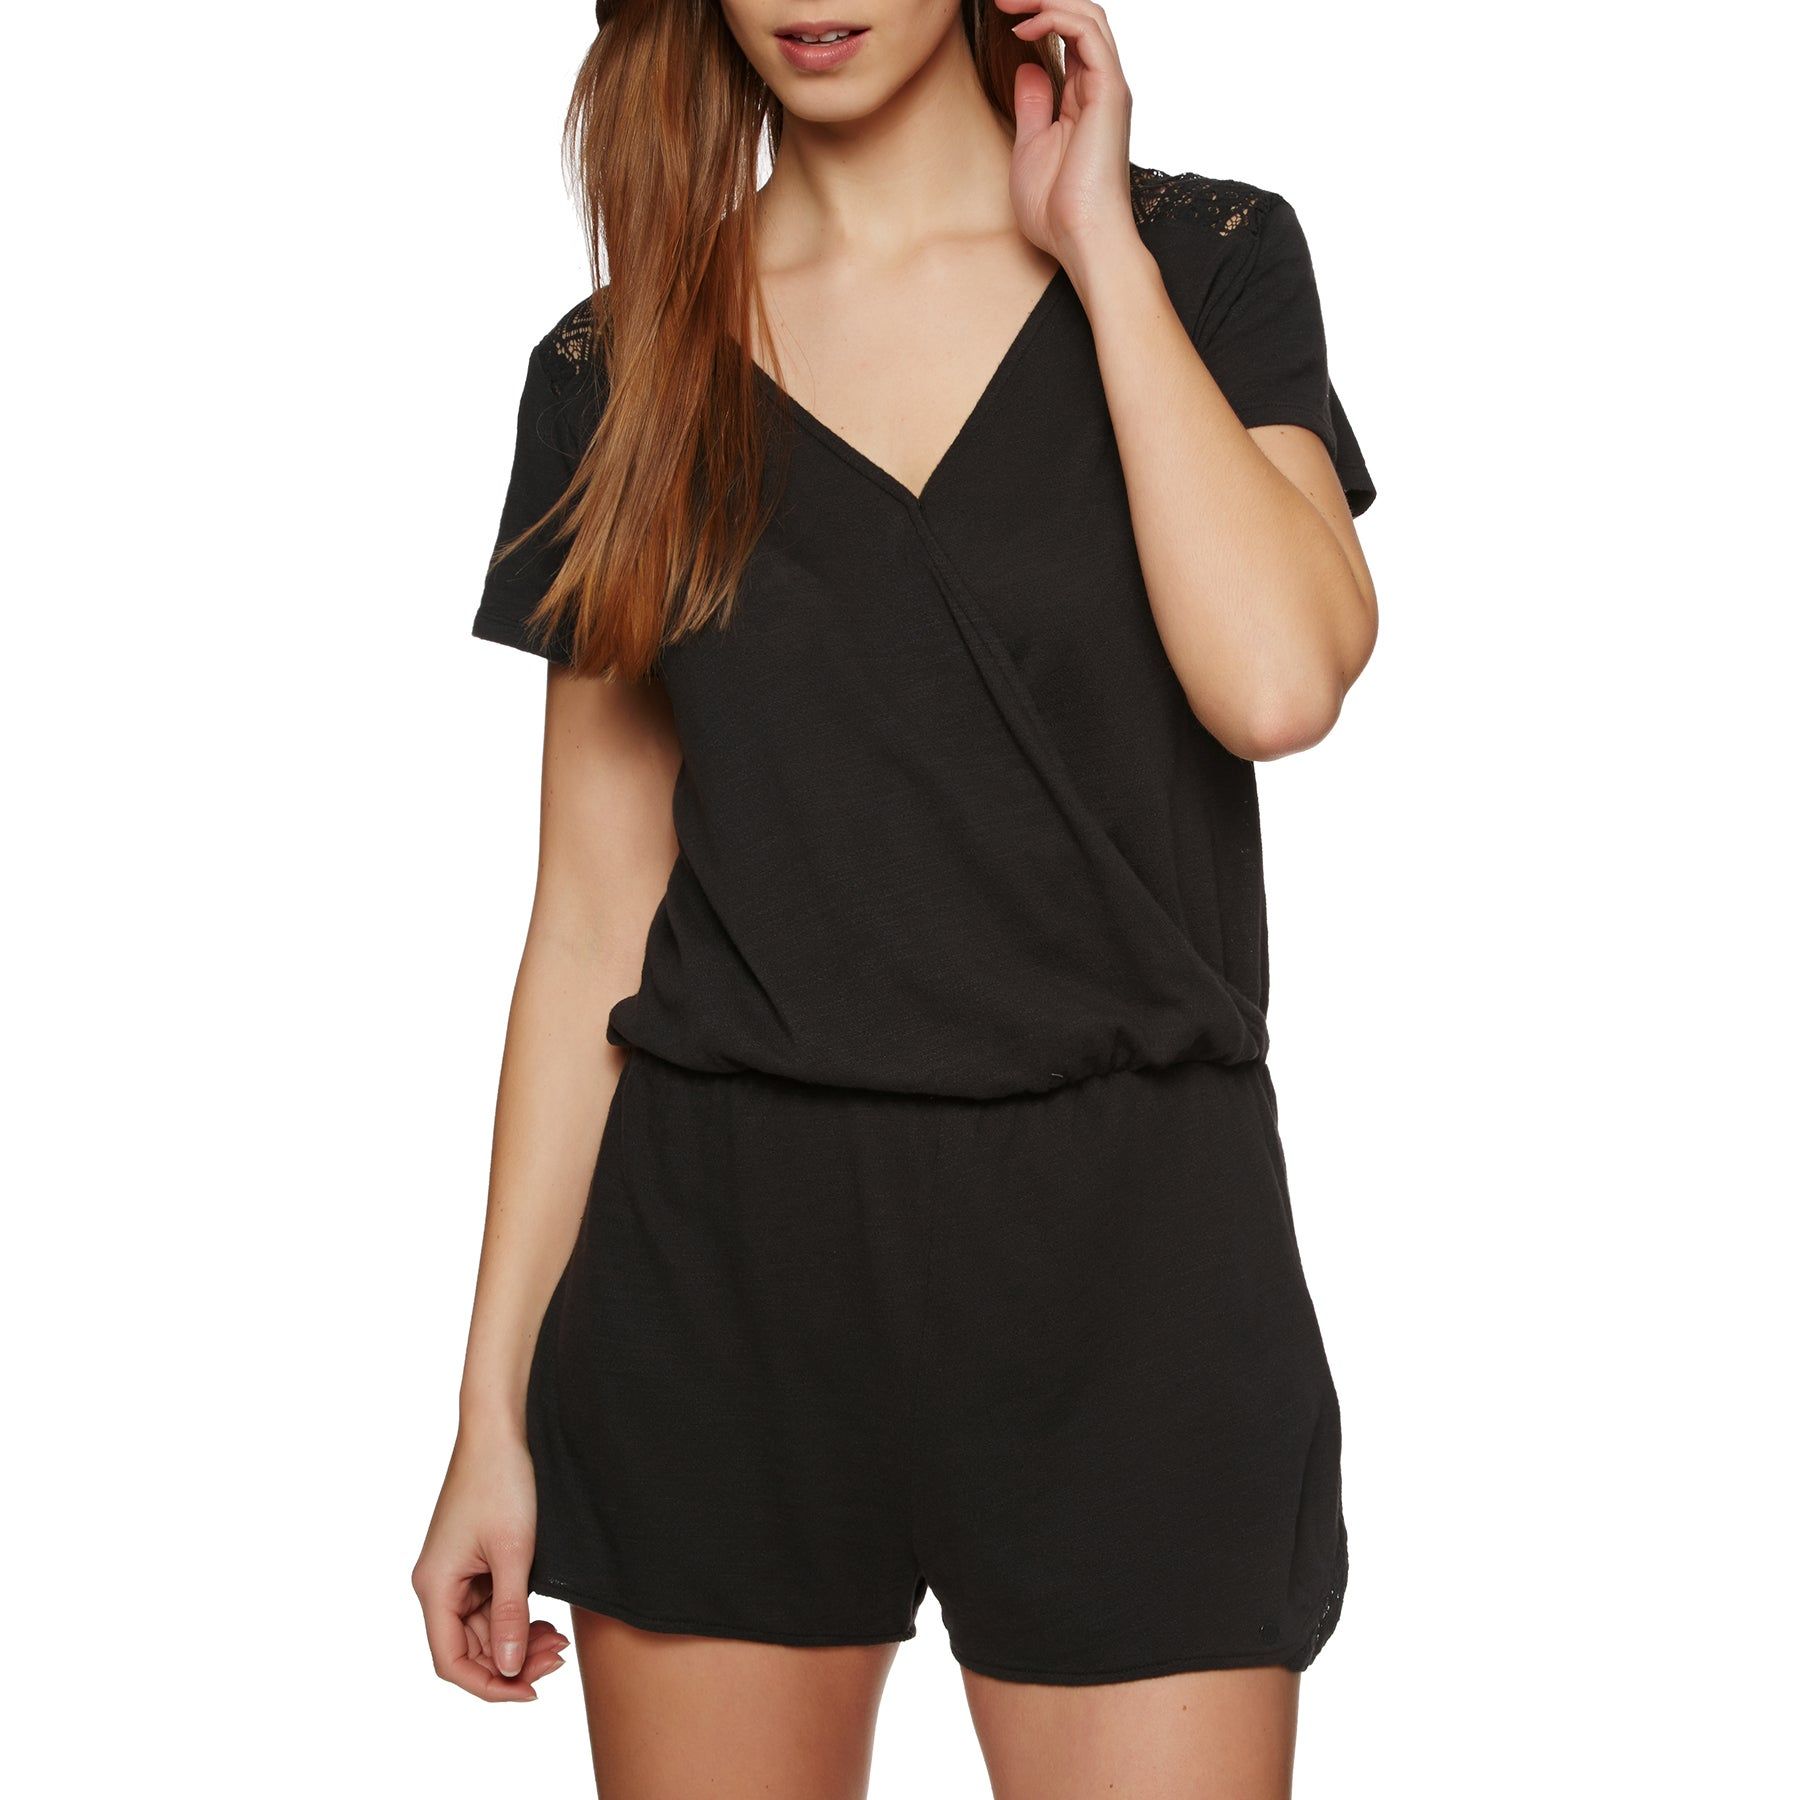 Roxy Salty Evening Playsuit - Anthracite